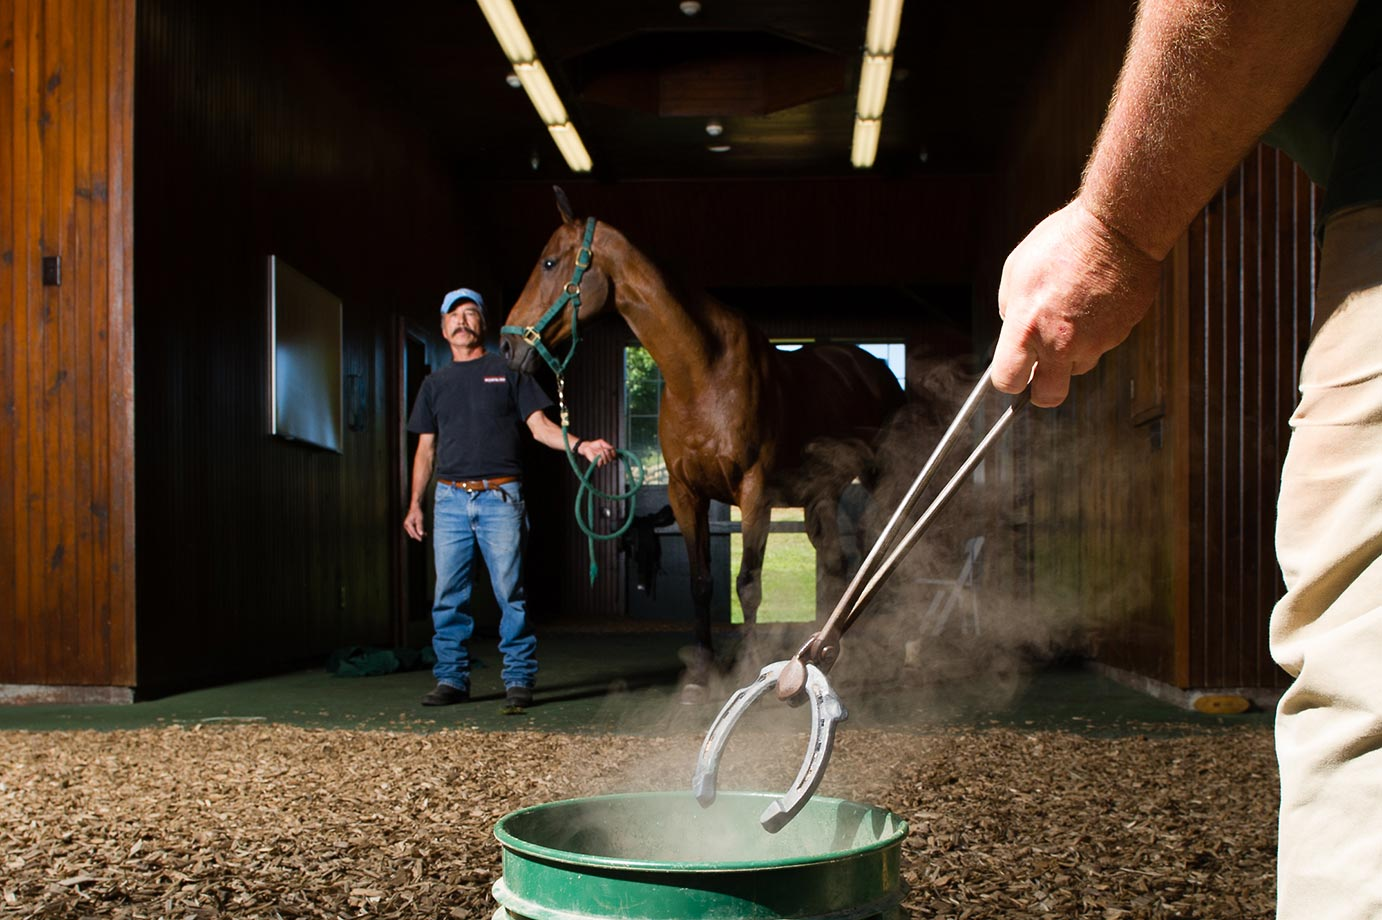 White Birch Farm's farrier Martin Schnibbe cools a horseshoe at Peter Brant's White Birch Farm in Greenwich, Conn.